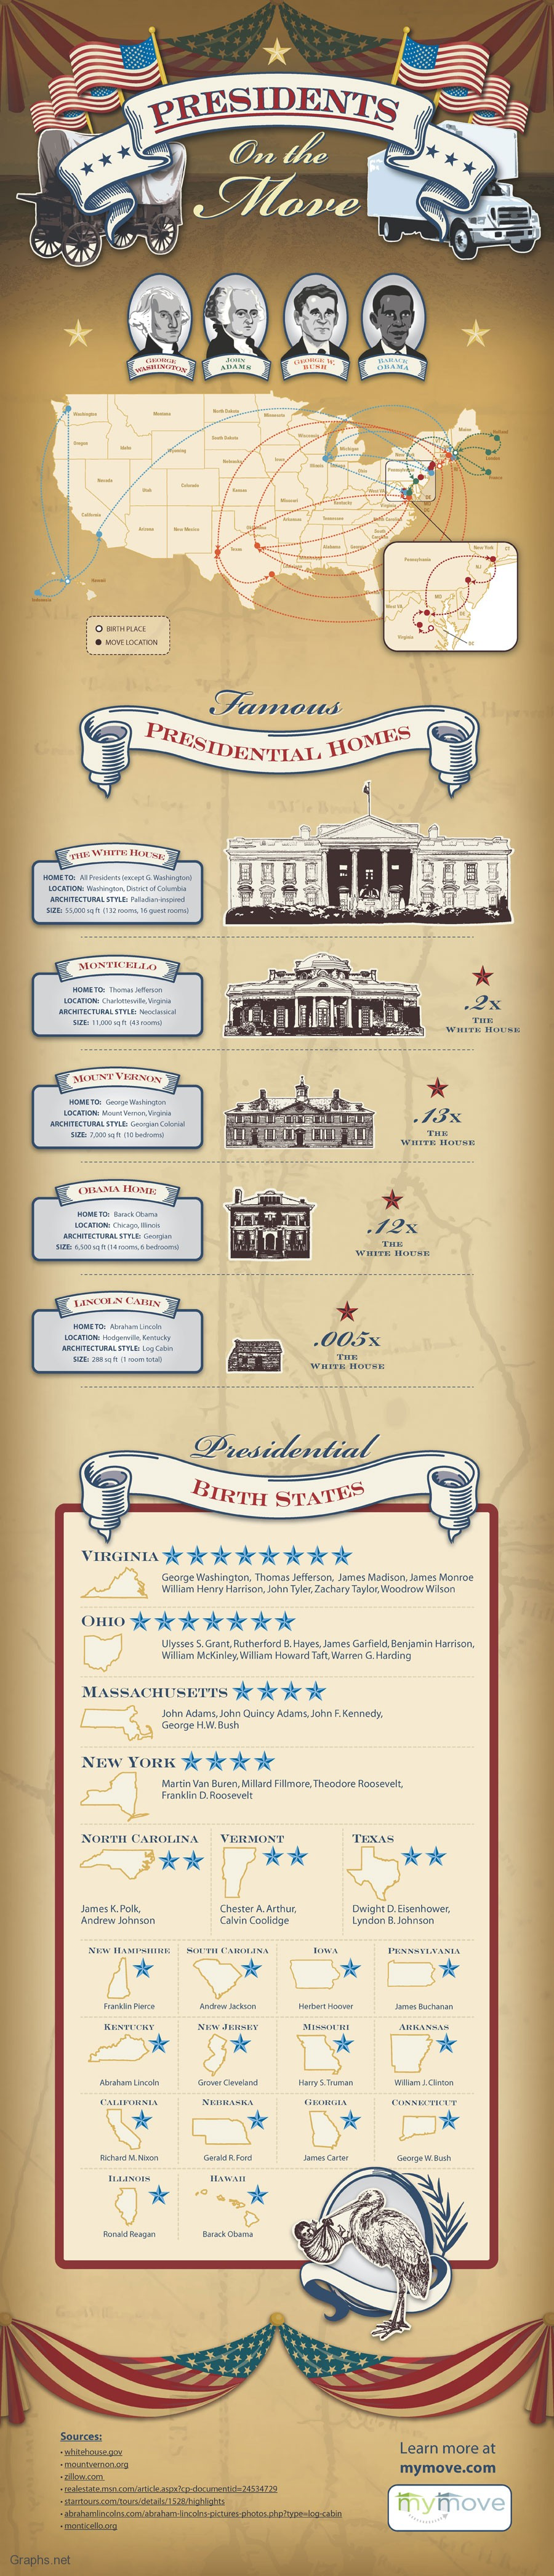 Most Popular Presidential Homes